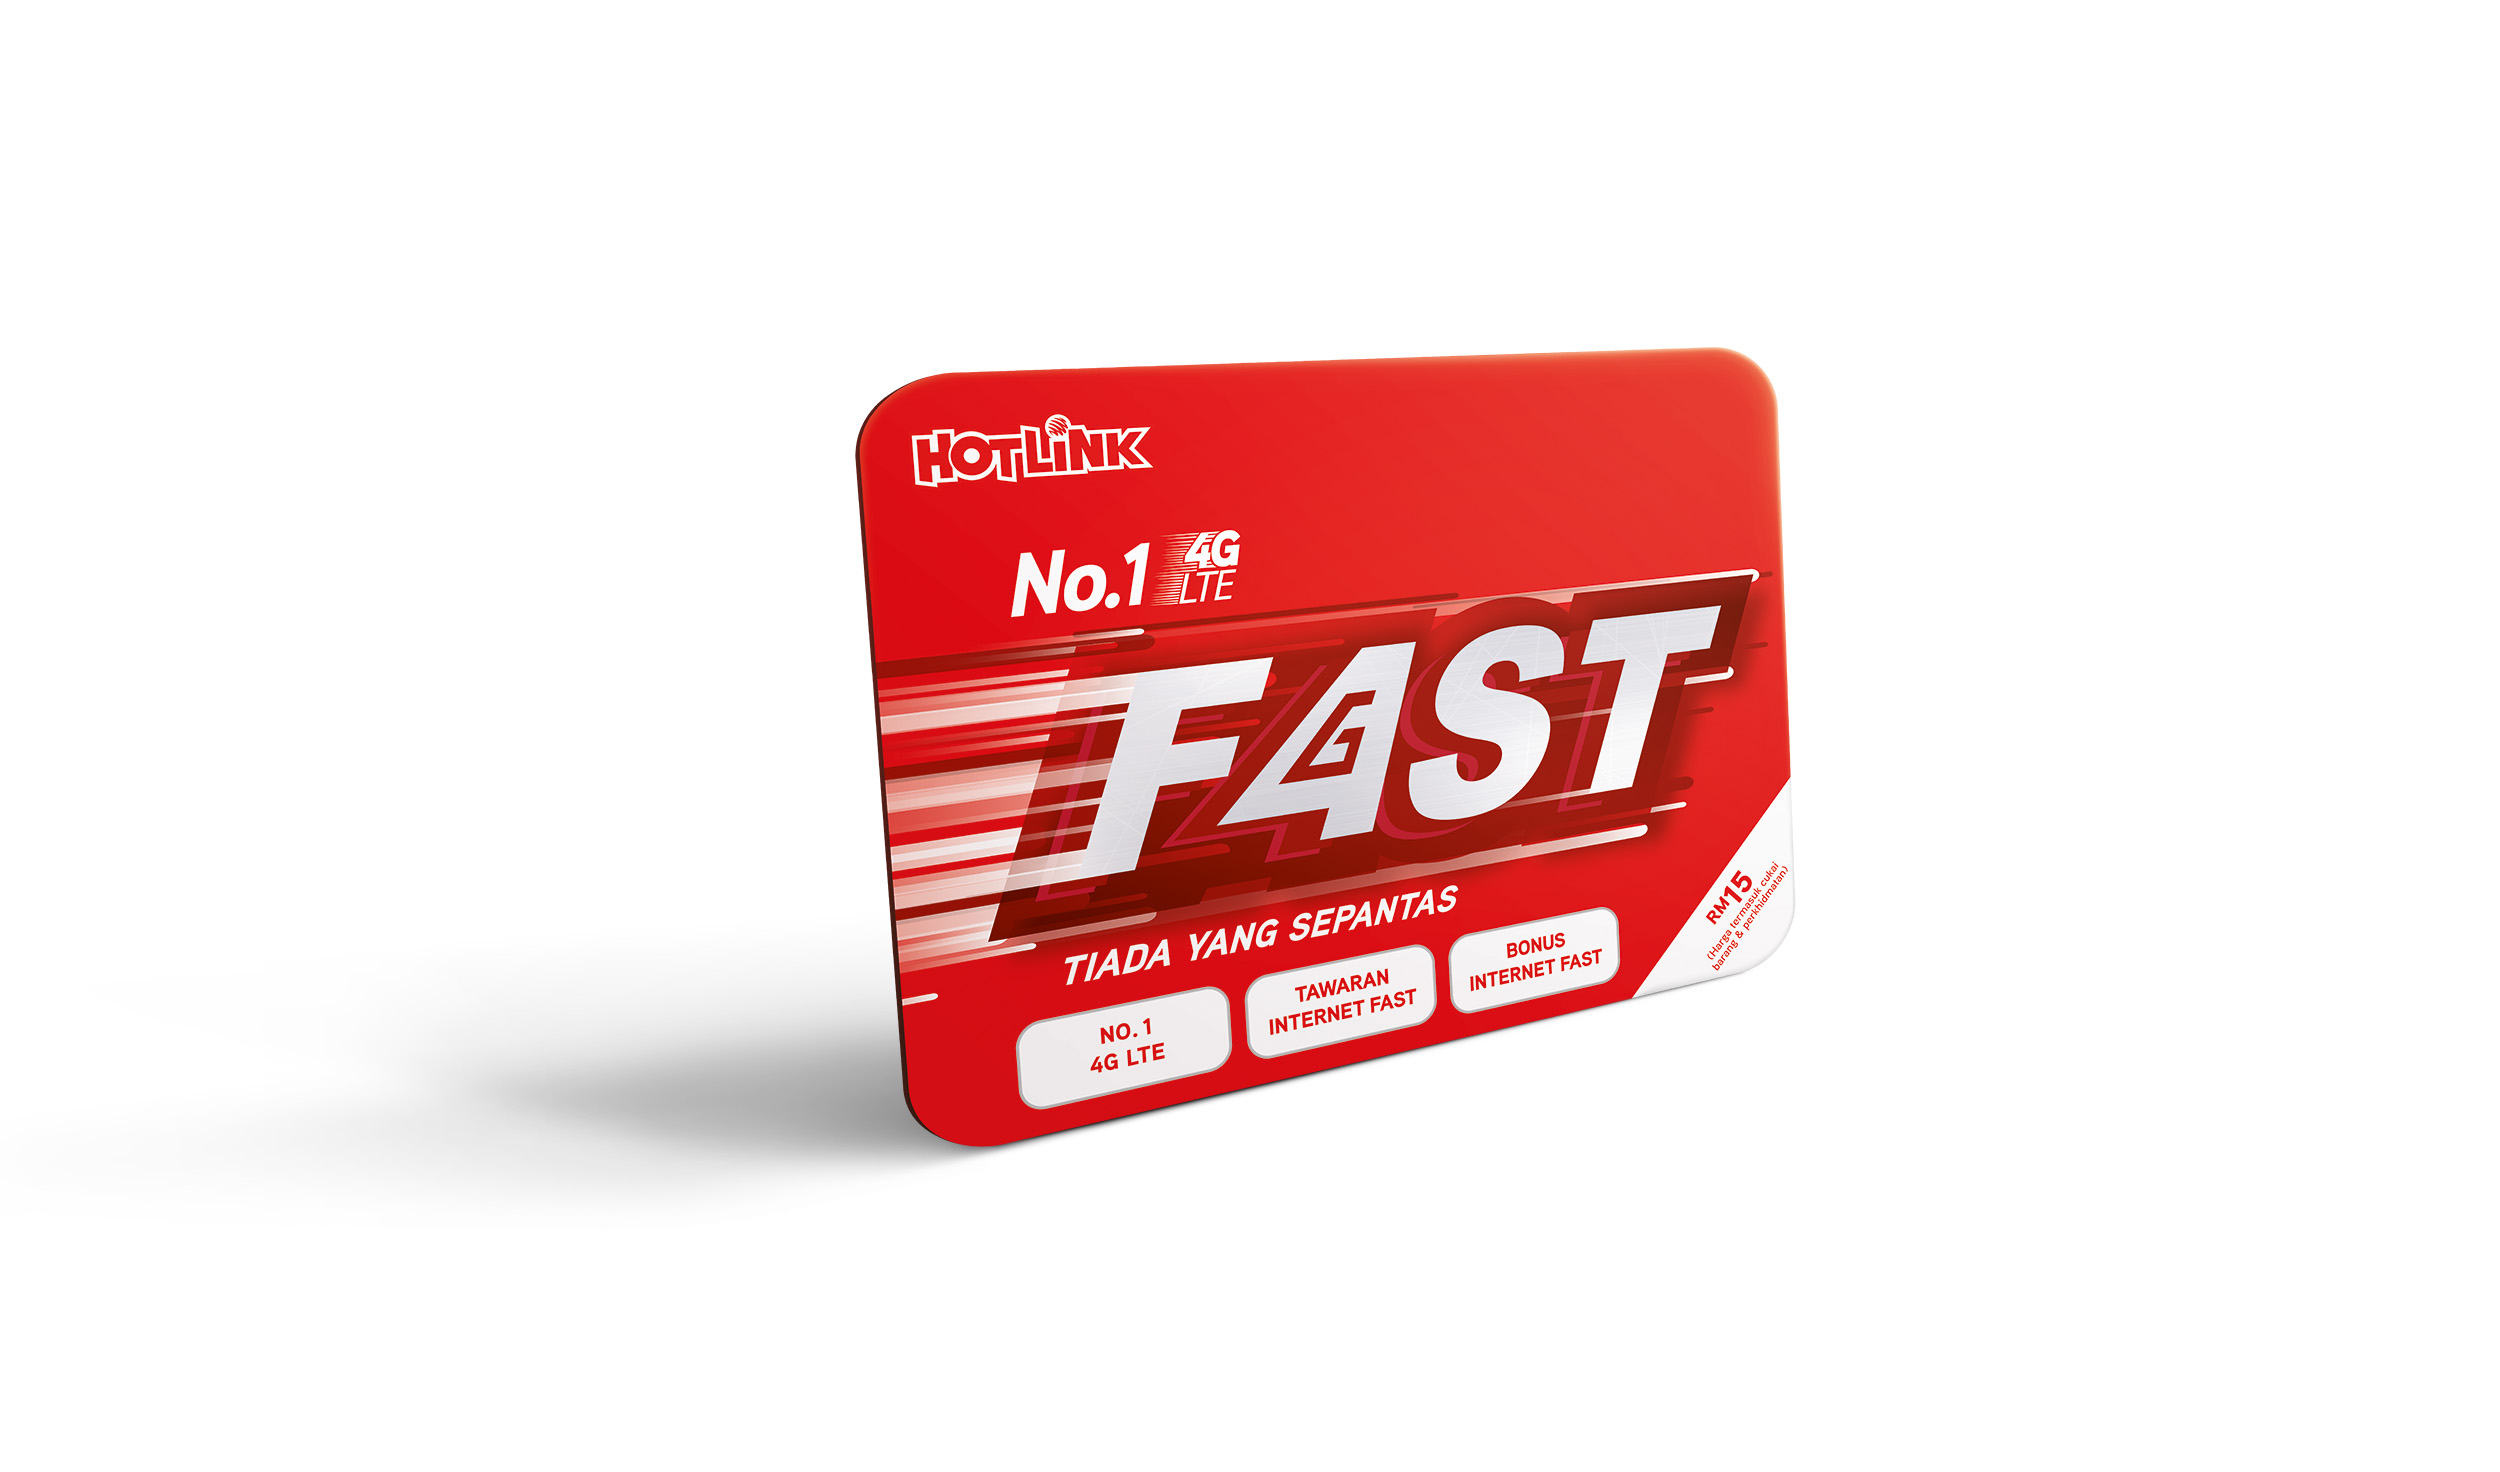 Want it fast and cheap? Maxis brings you Hotlink FAST